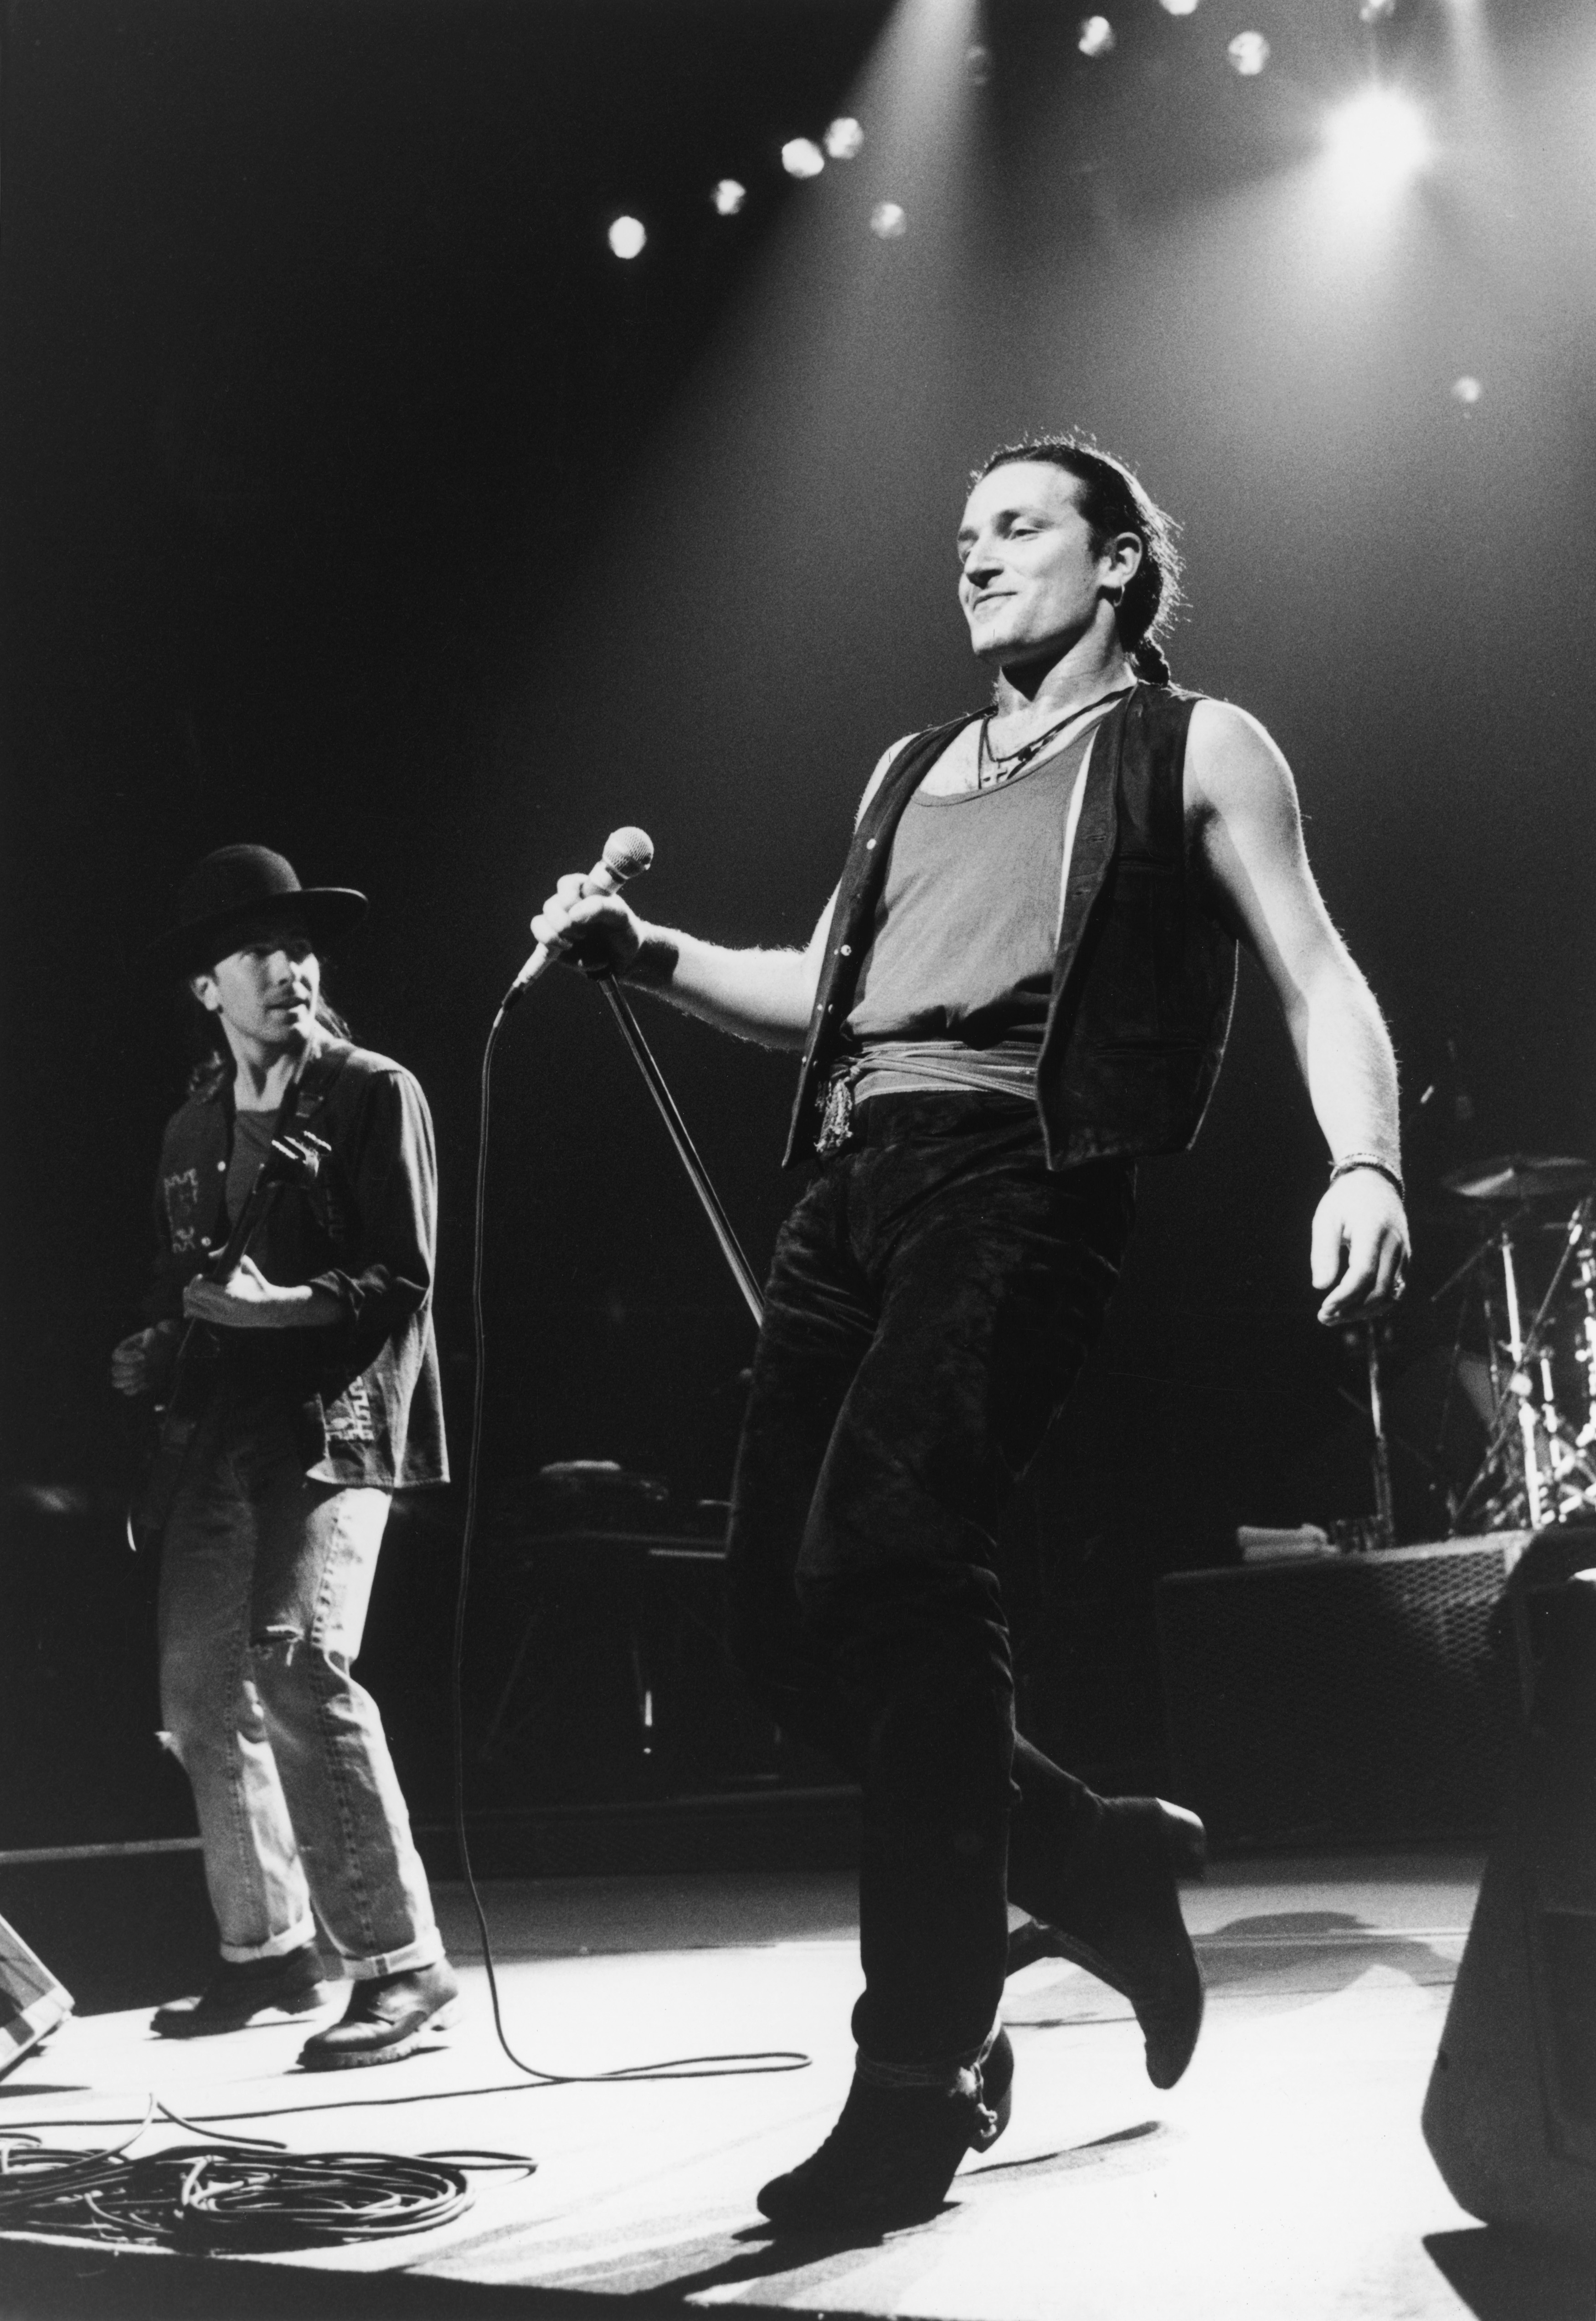 Bono probably War era U2 Bono u2 Cool lyrics et Rolling Stones